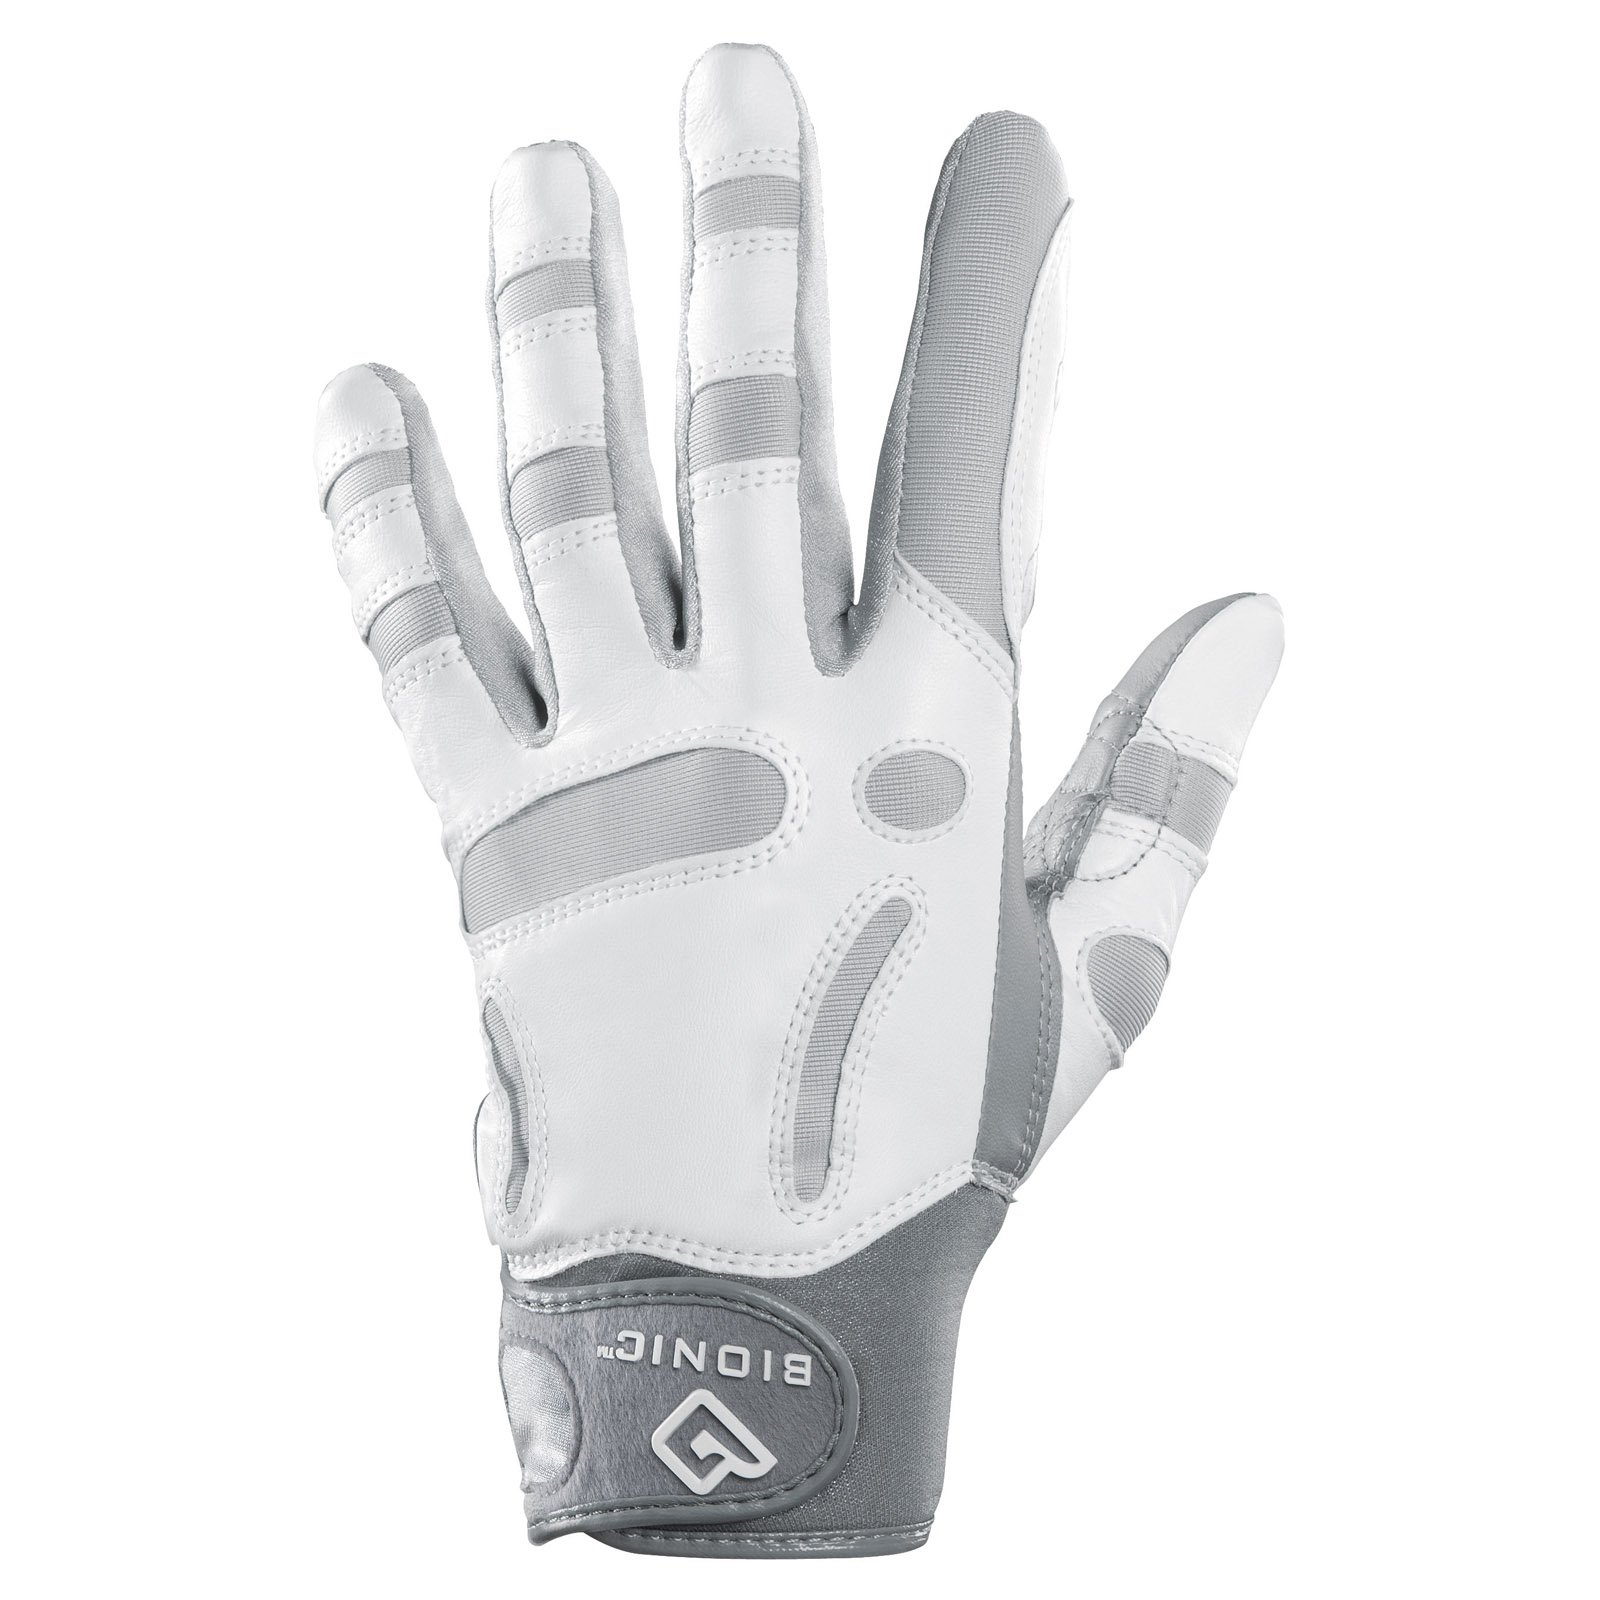 Bionic Womens ReliefGrip Golf Glove Right Large by Bionic